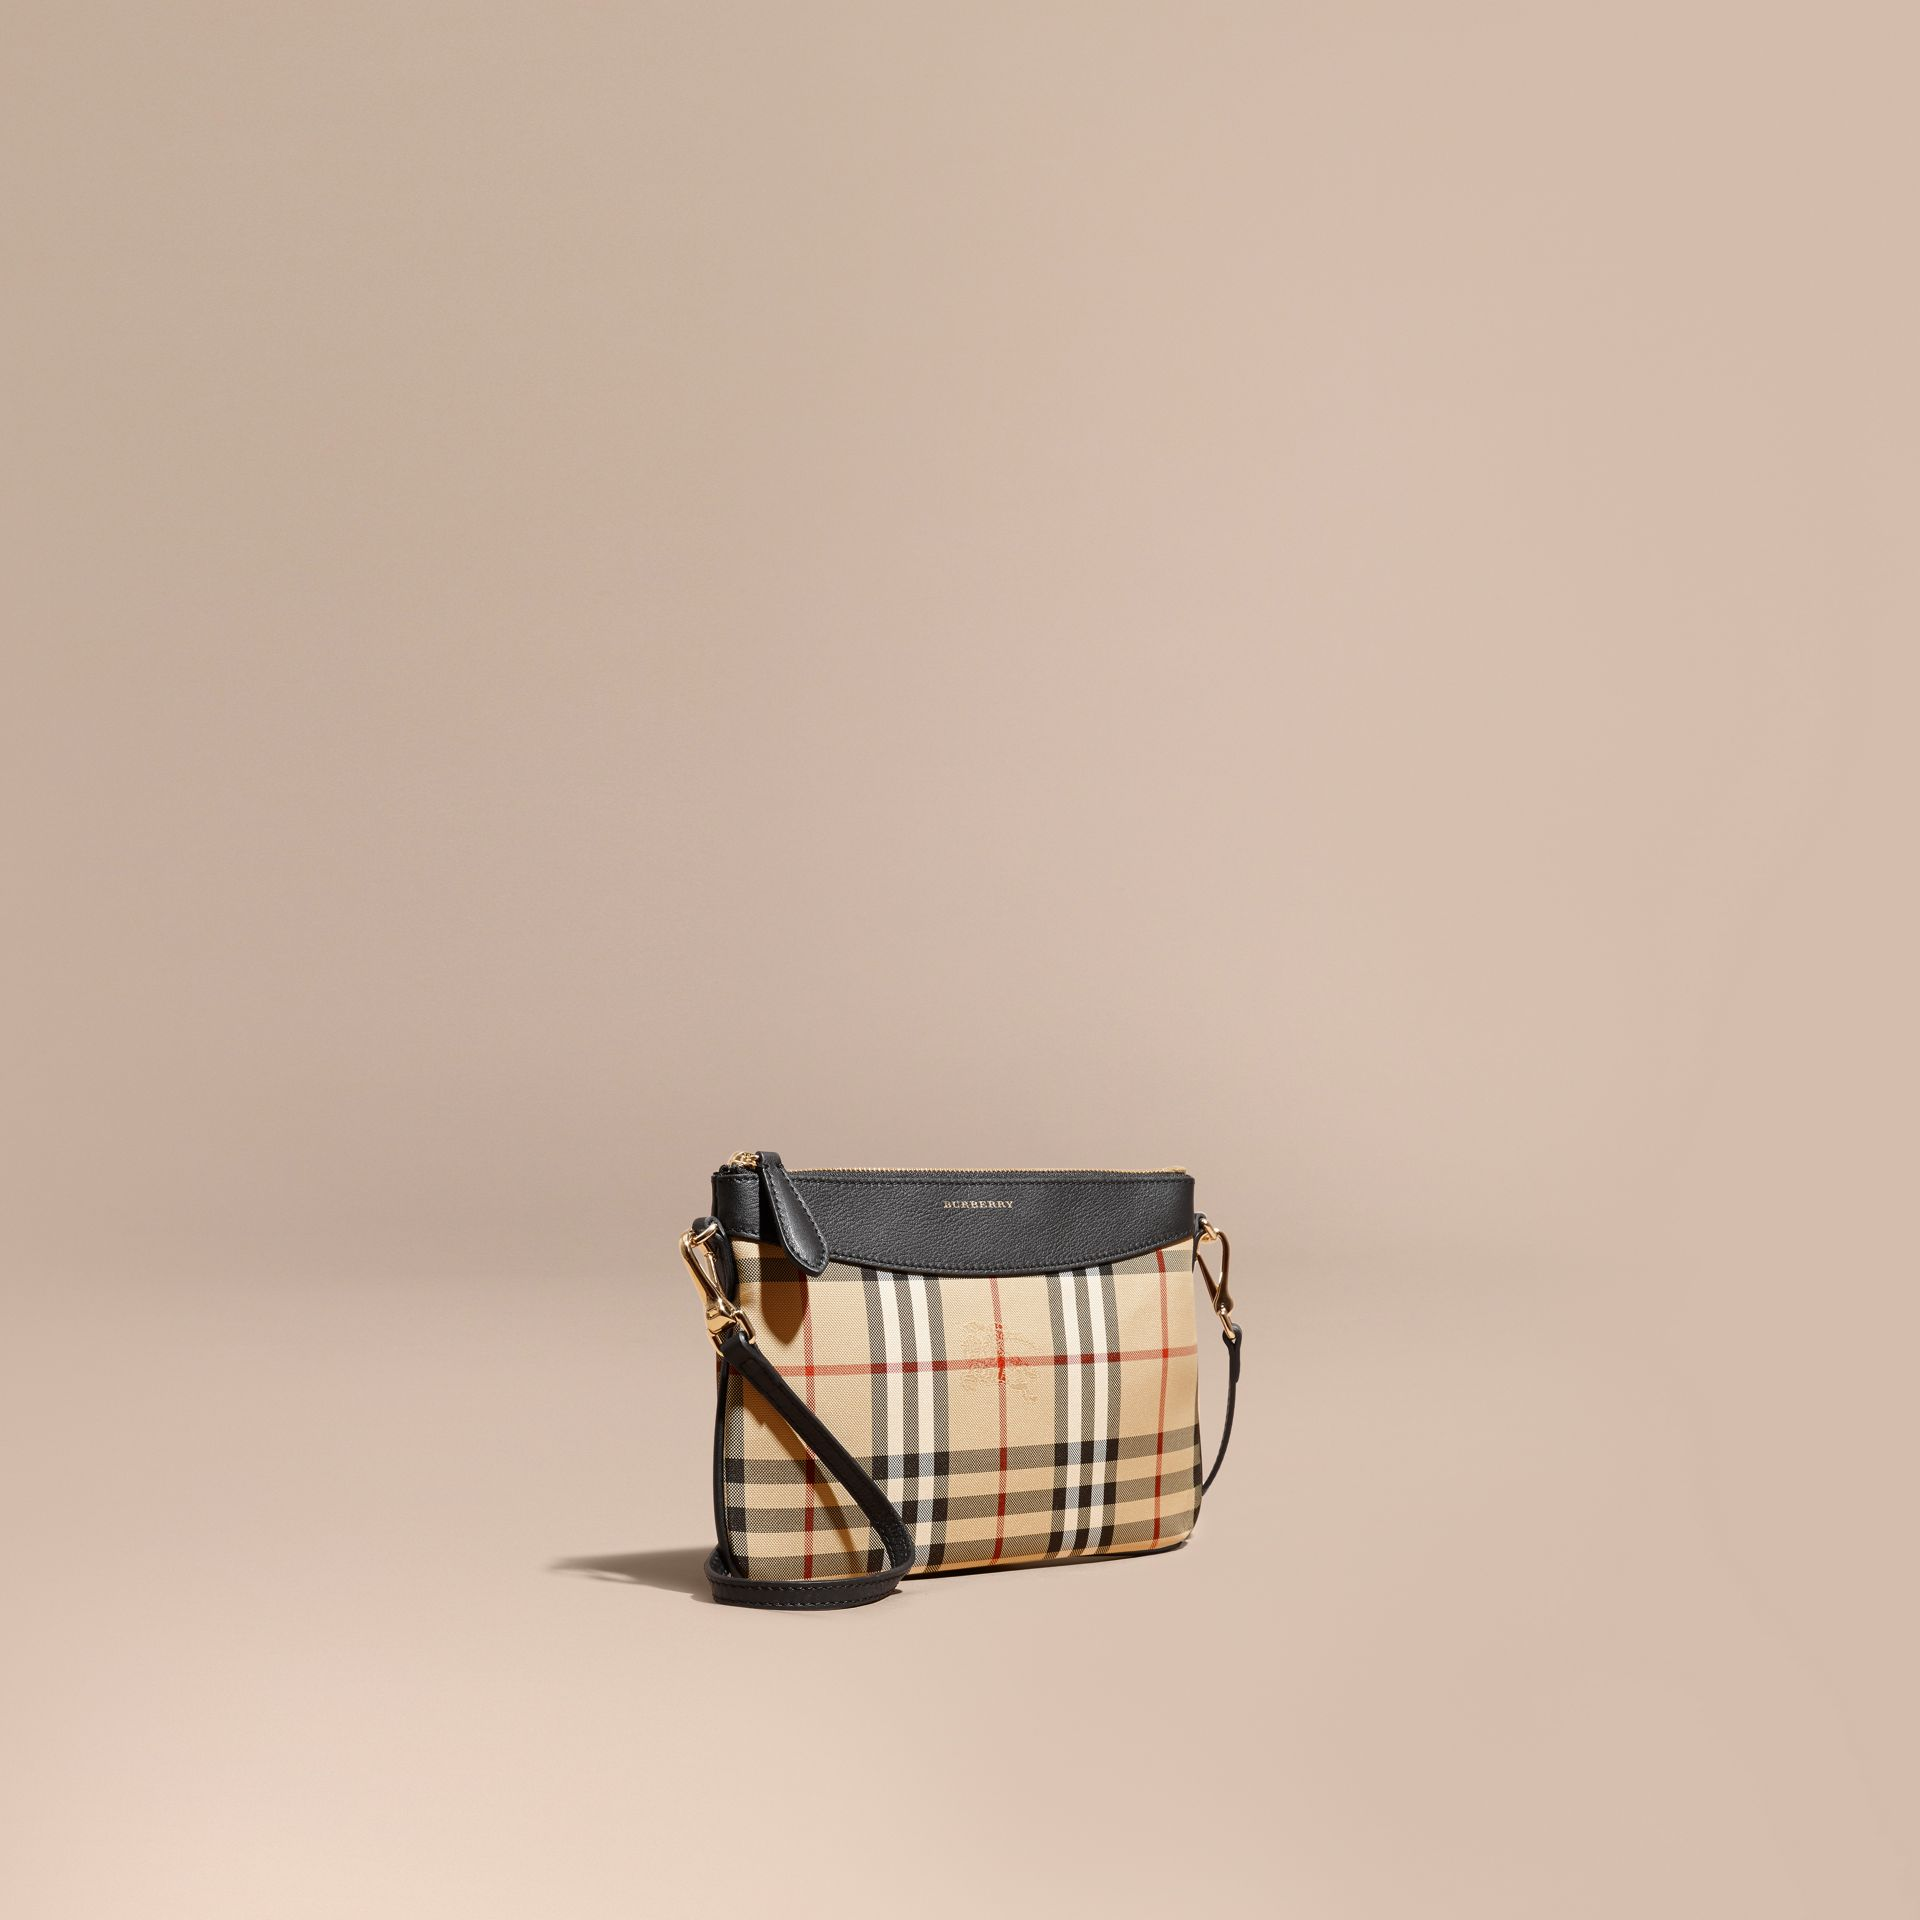 Horseferry Check and Leather Clutch Bag in Black - Women | Burberry Canada - gallery image 1